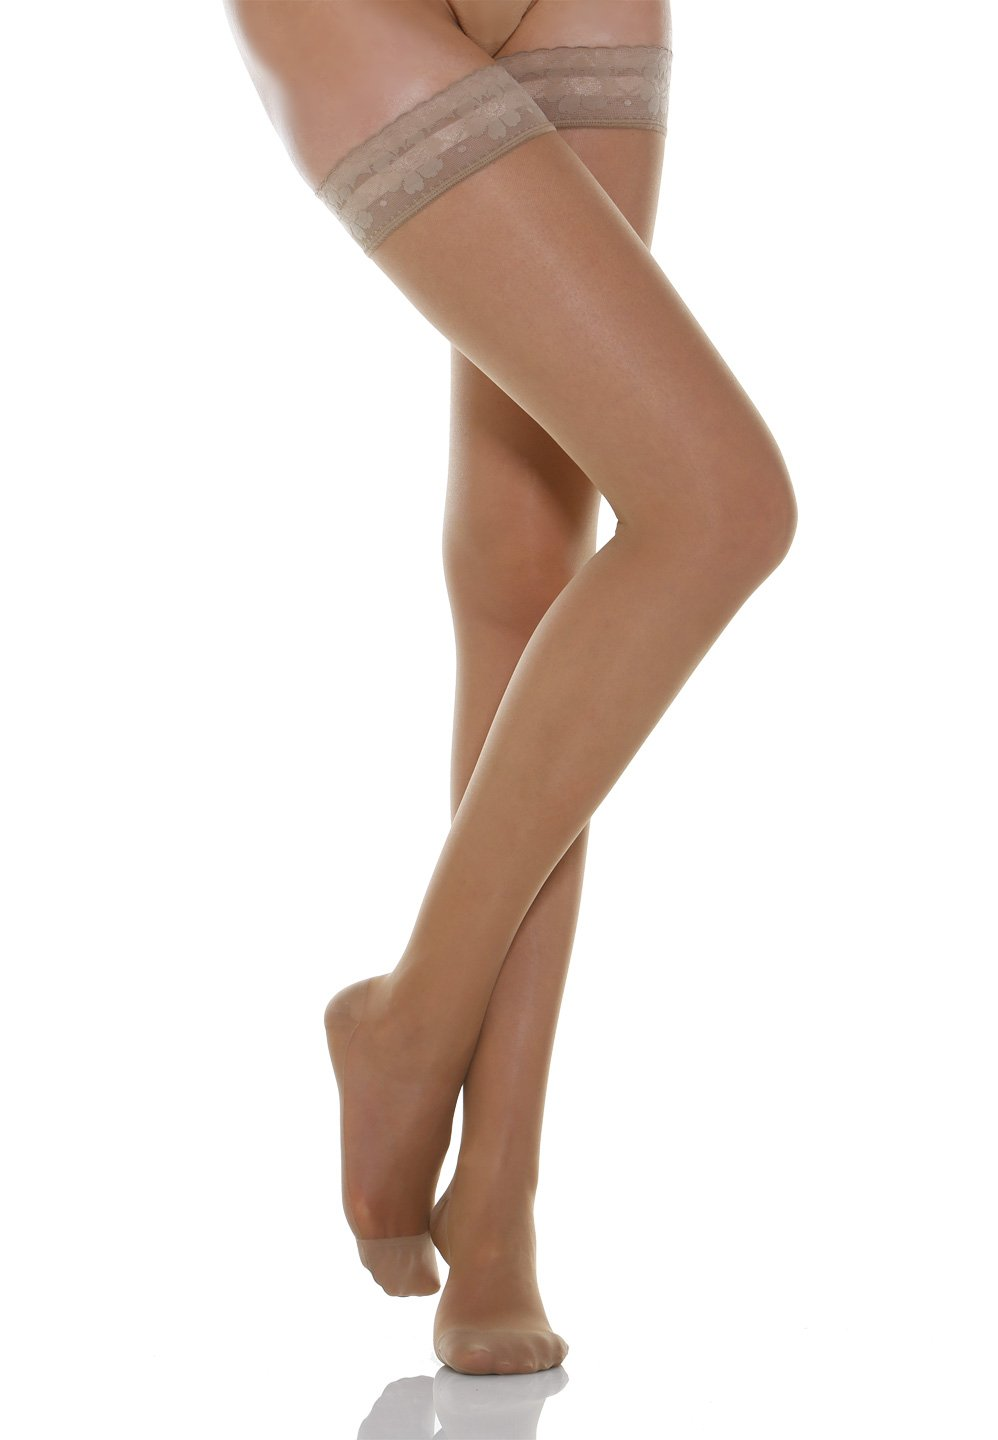 Relaxsan Basic 870 - moderate support Thigh High W/Lace stockings 15-20 mmHg Calze G.T. S.r.l.